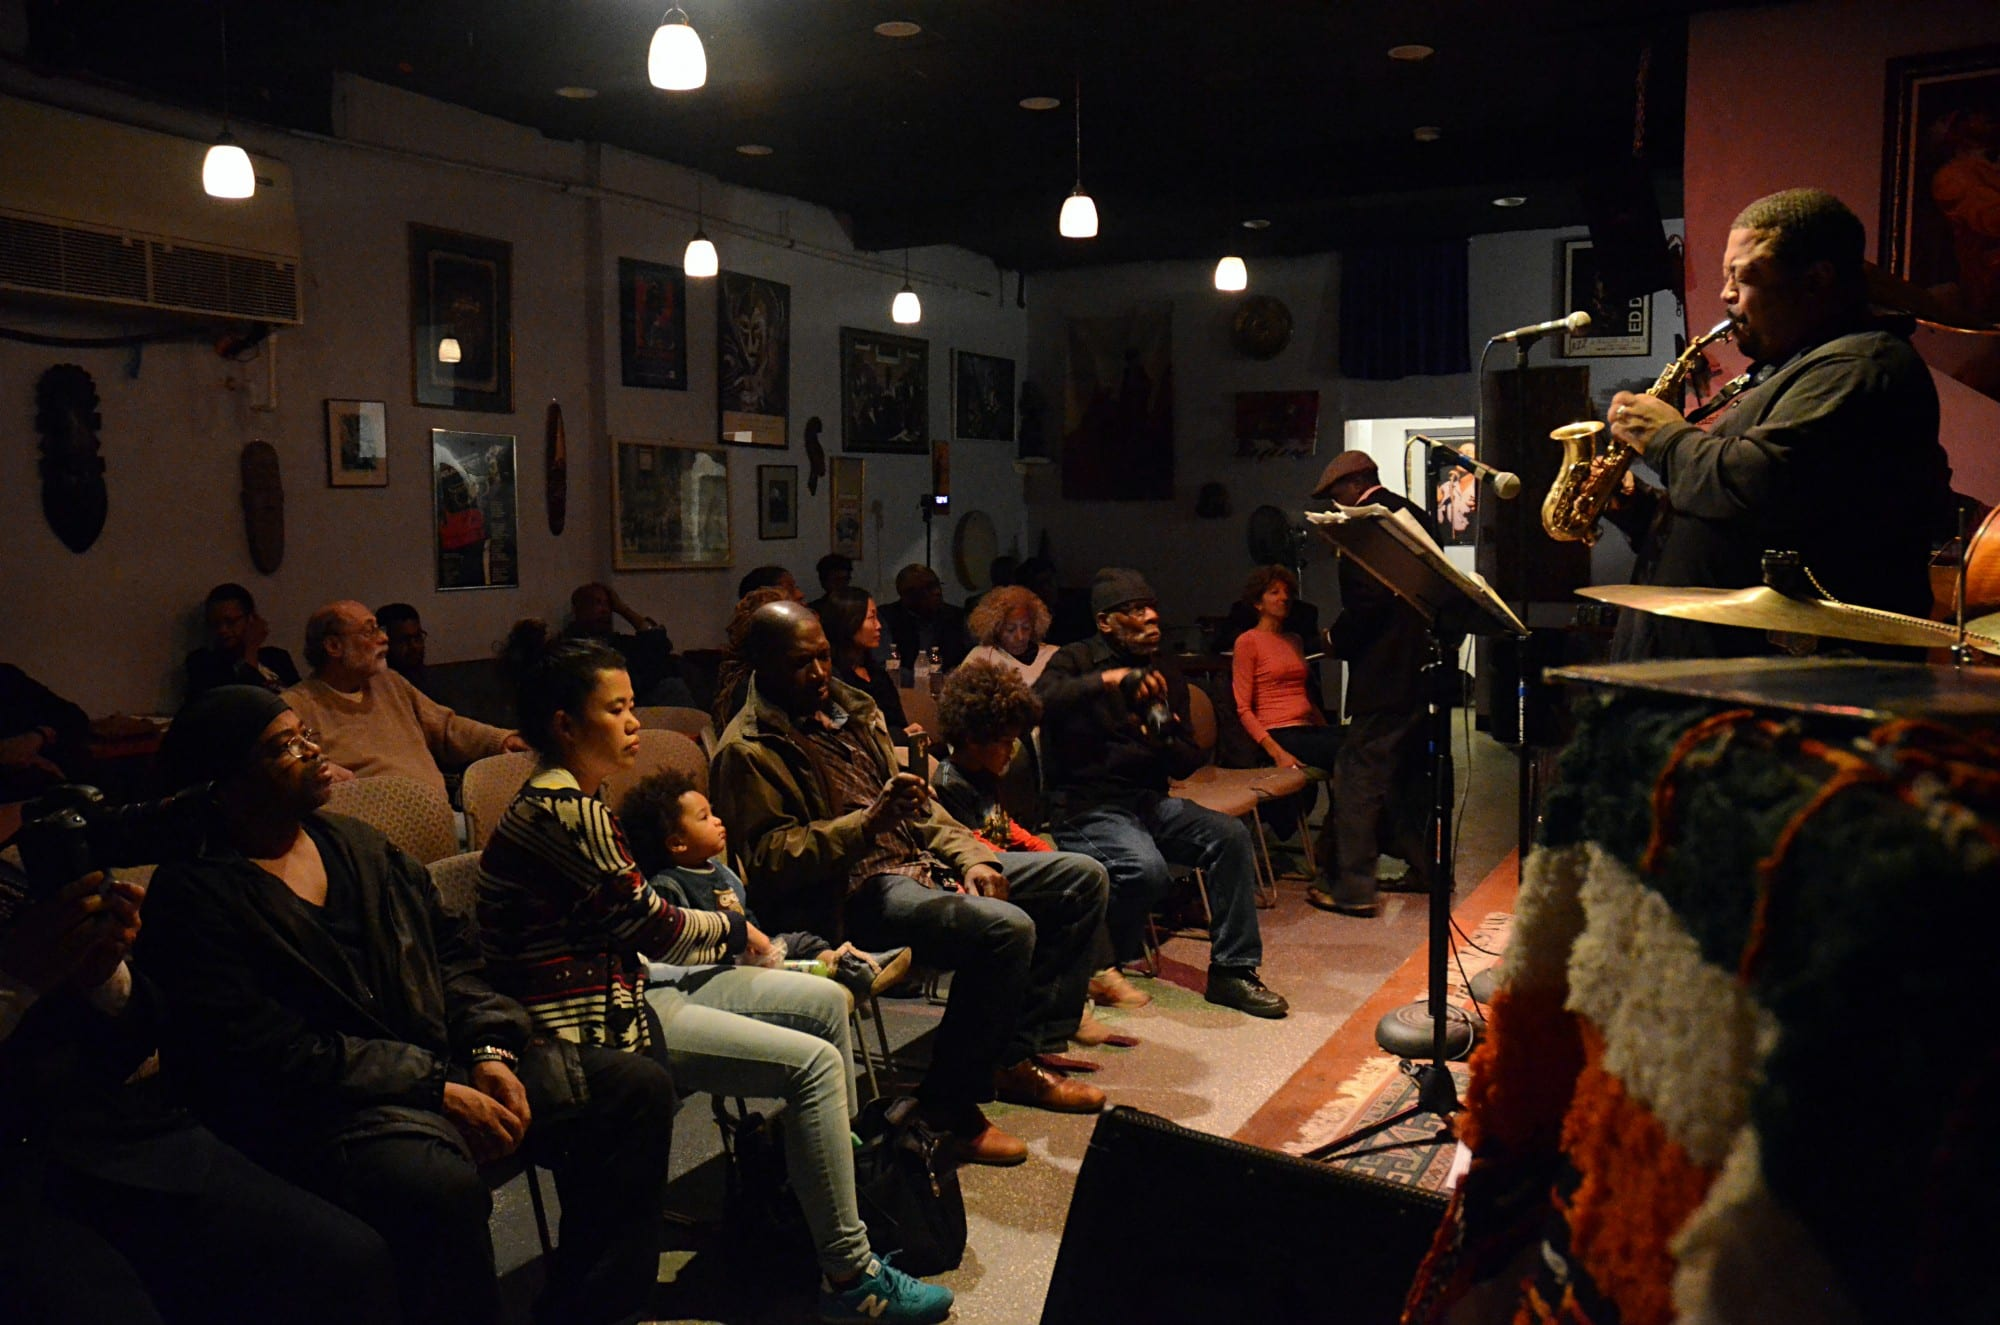 Saxophonist Craig Alston leads a band at JACS on a recent Sunday night. Barédu Ahmed/CapitalBop